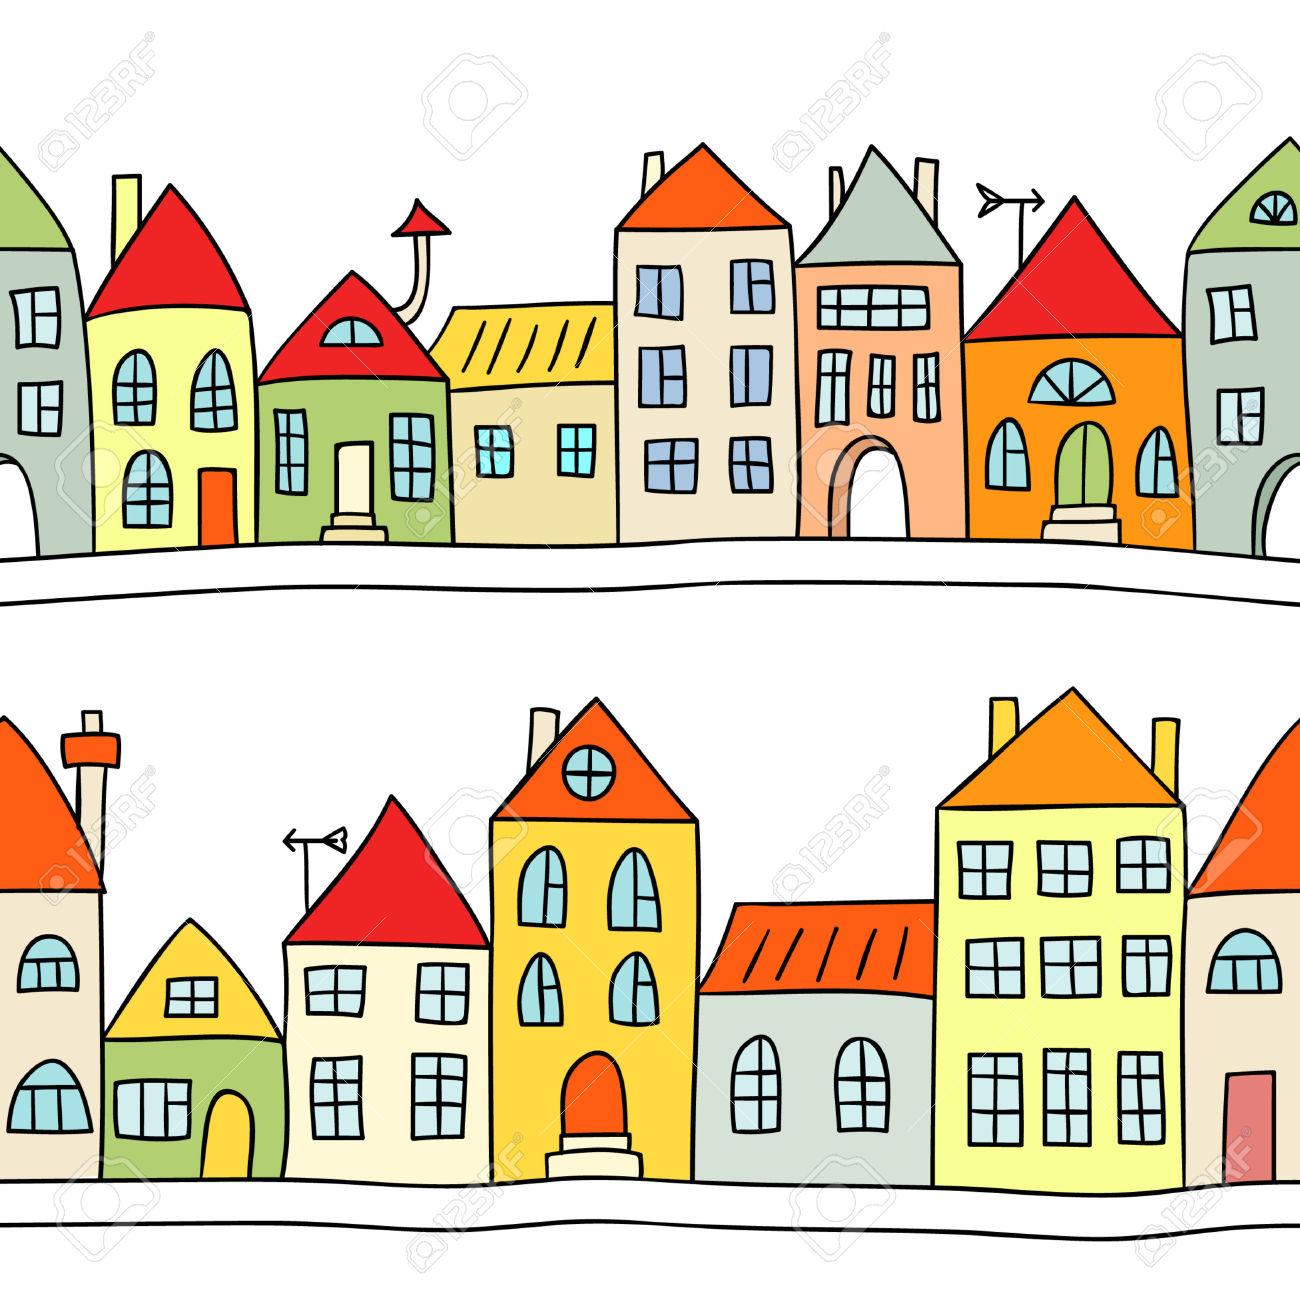 Houses clipart images image free Row houses clipart » Clipart Station image free